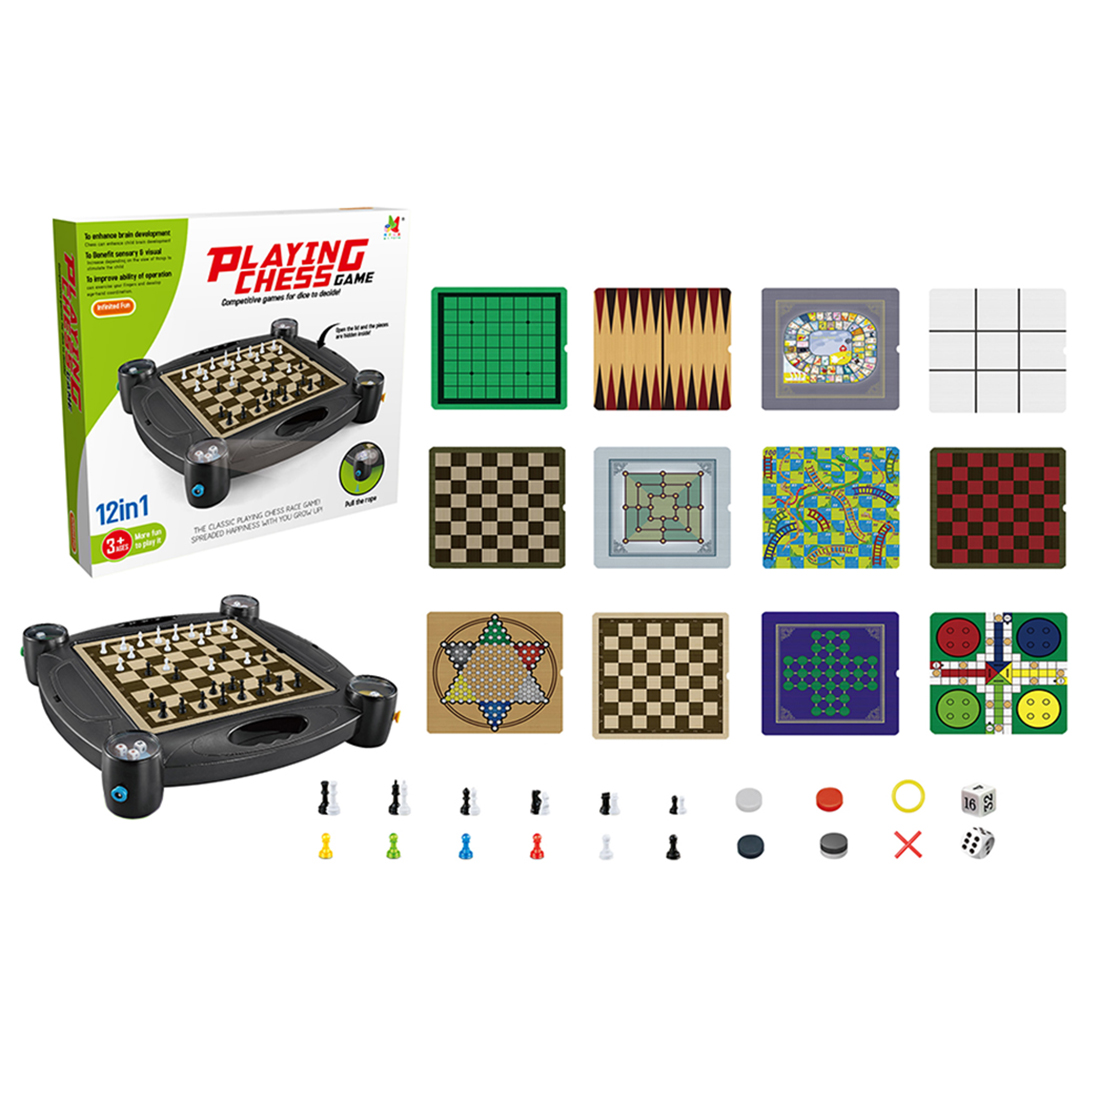 12 in 1 Children Chess Game Board Game Toy Set with Bracket for Kids Learning and